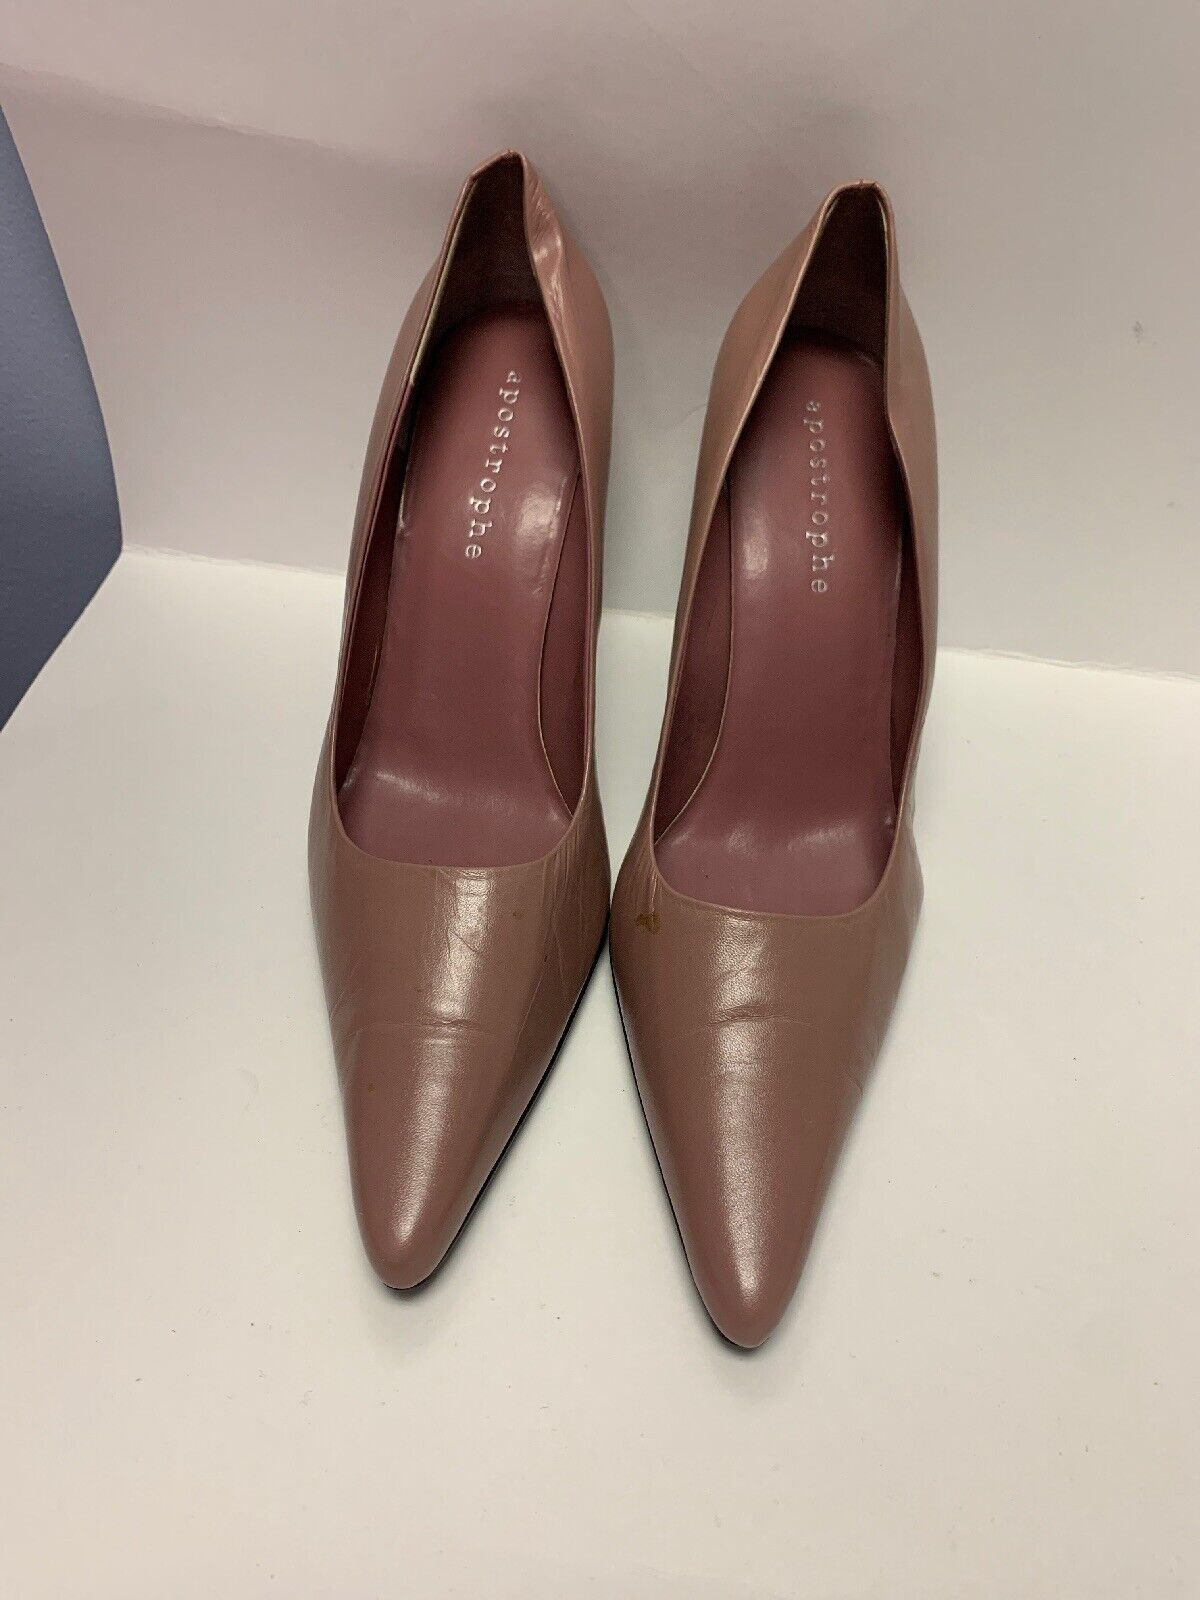 Apostrophe Brand Women's Heels- Mauve Colored Pump, Size 9 1/2. Slightly Used